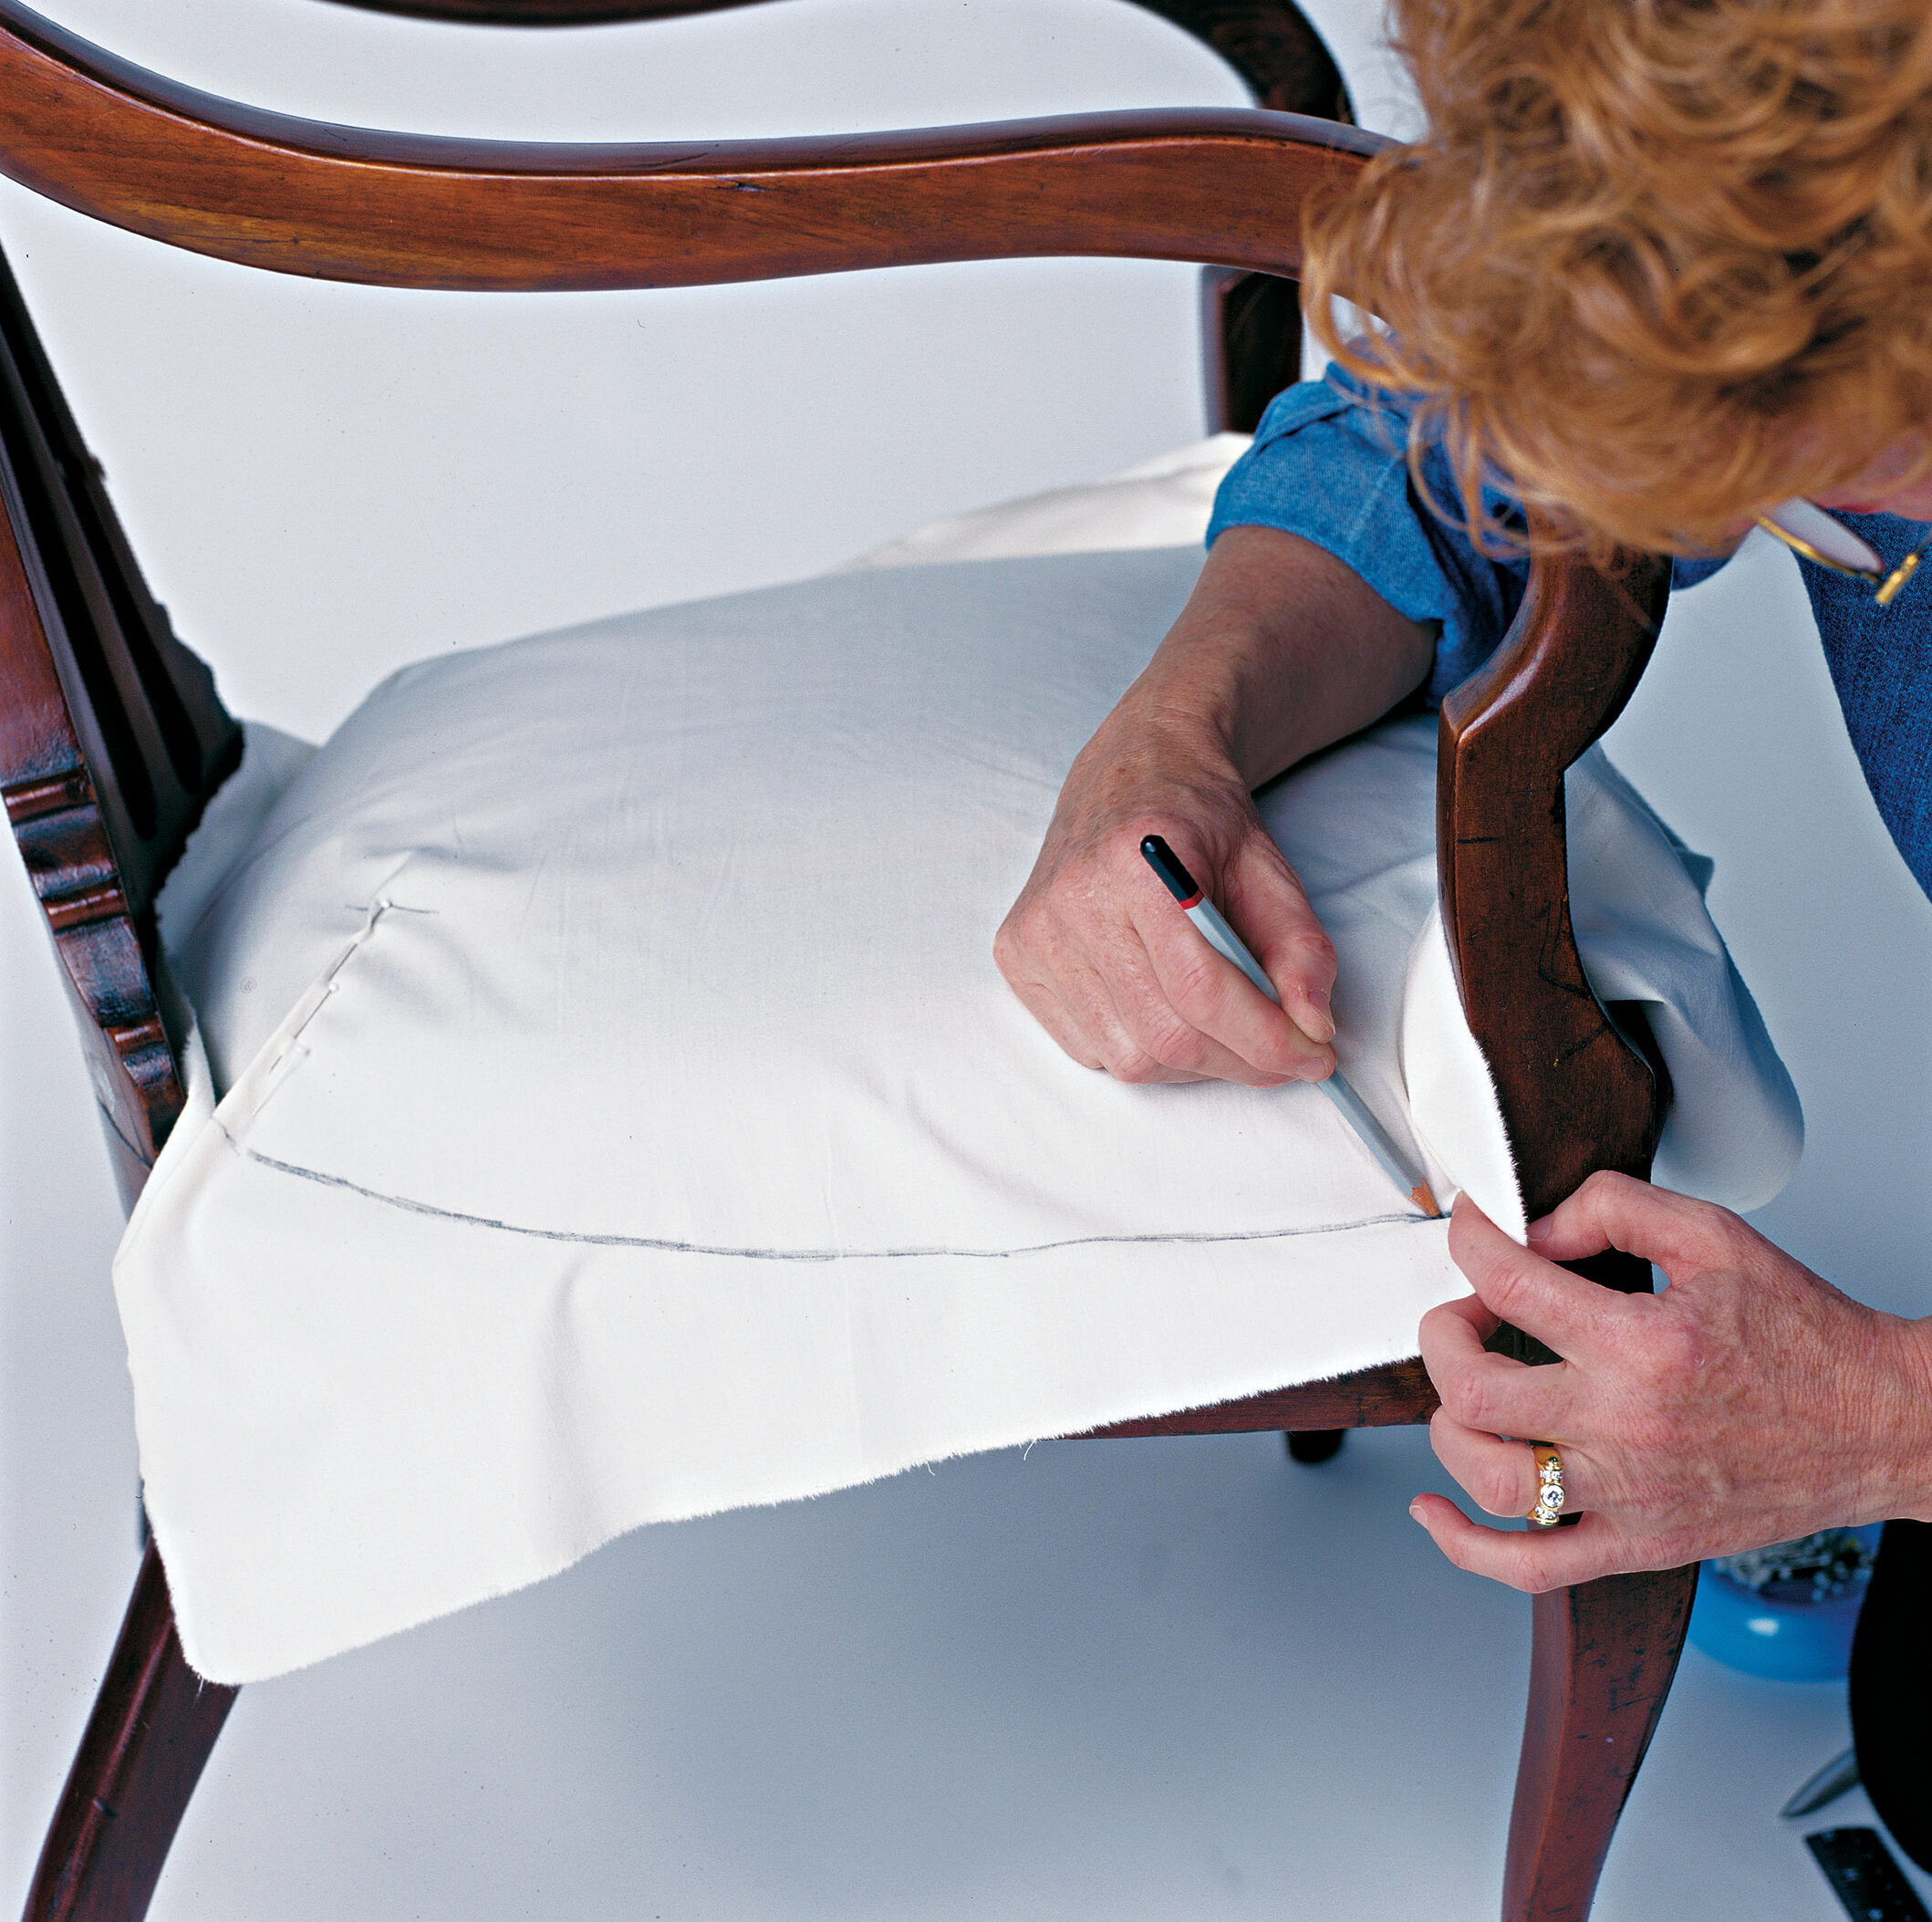 Smooth the fabric over the seat; pin folds, ripples, and puckers into darts where needed.